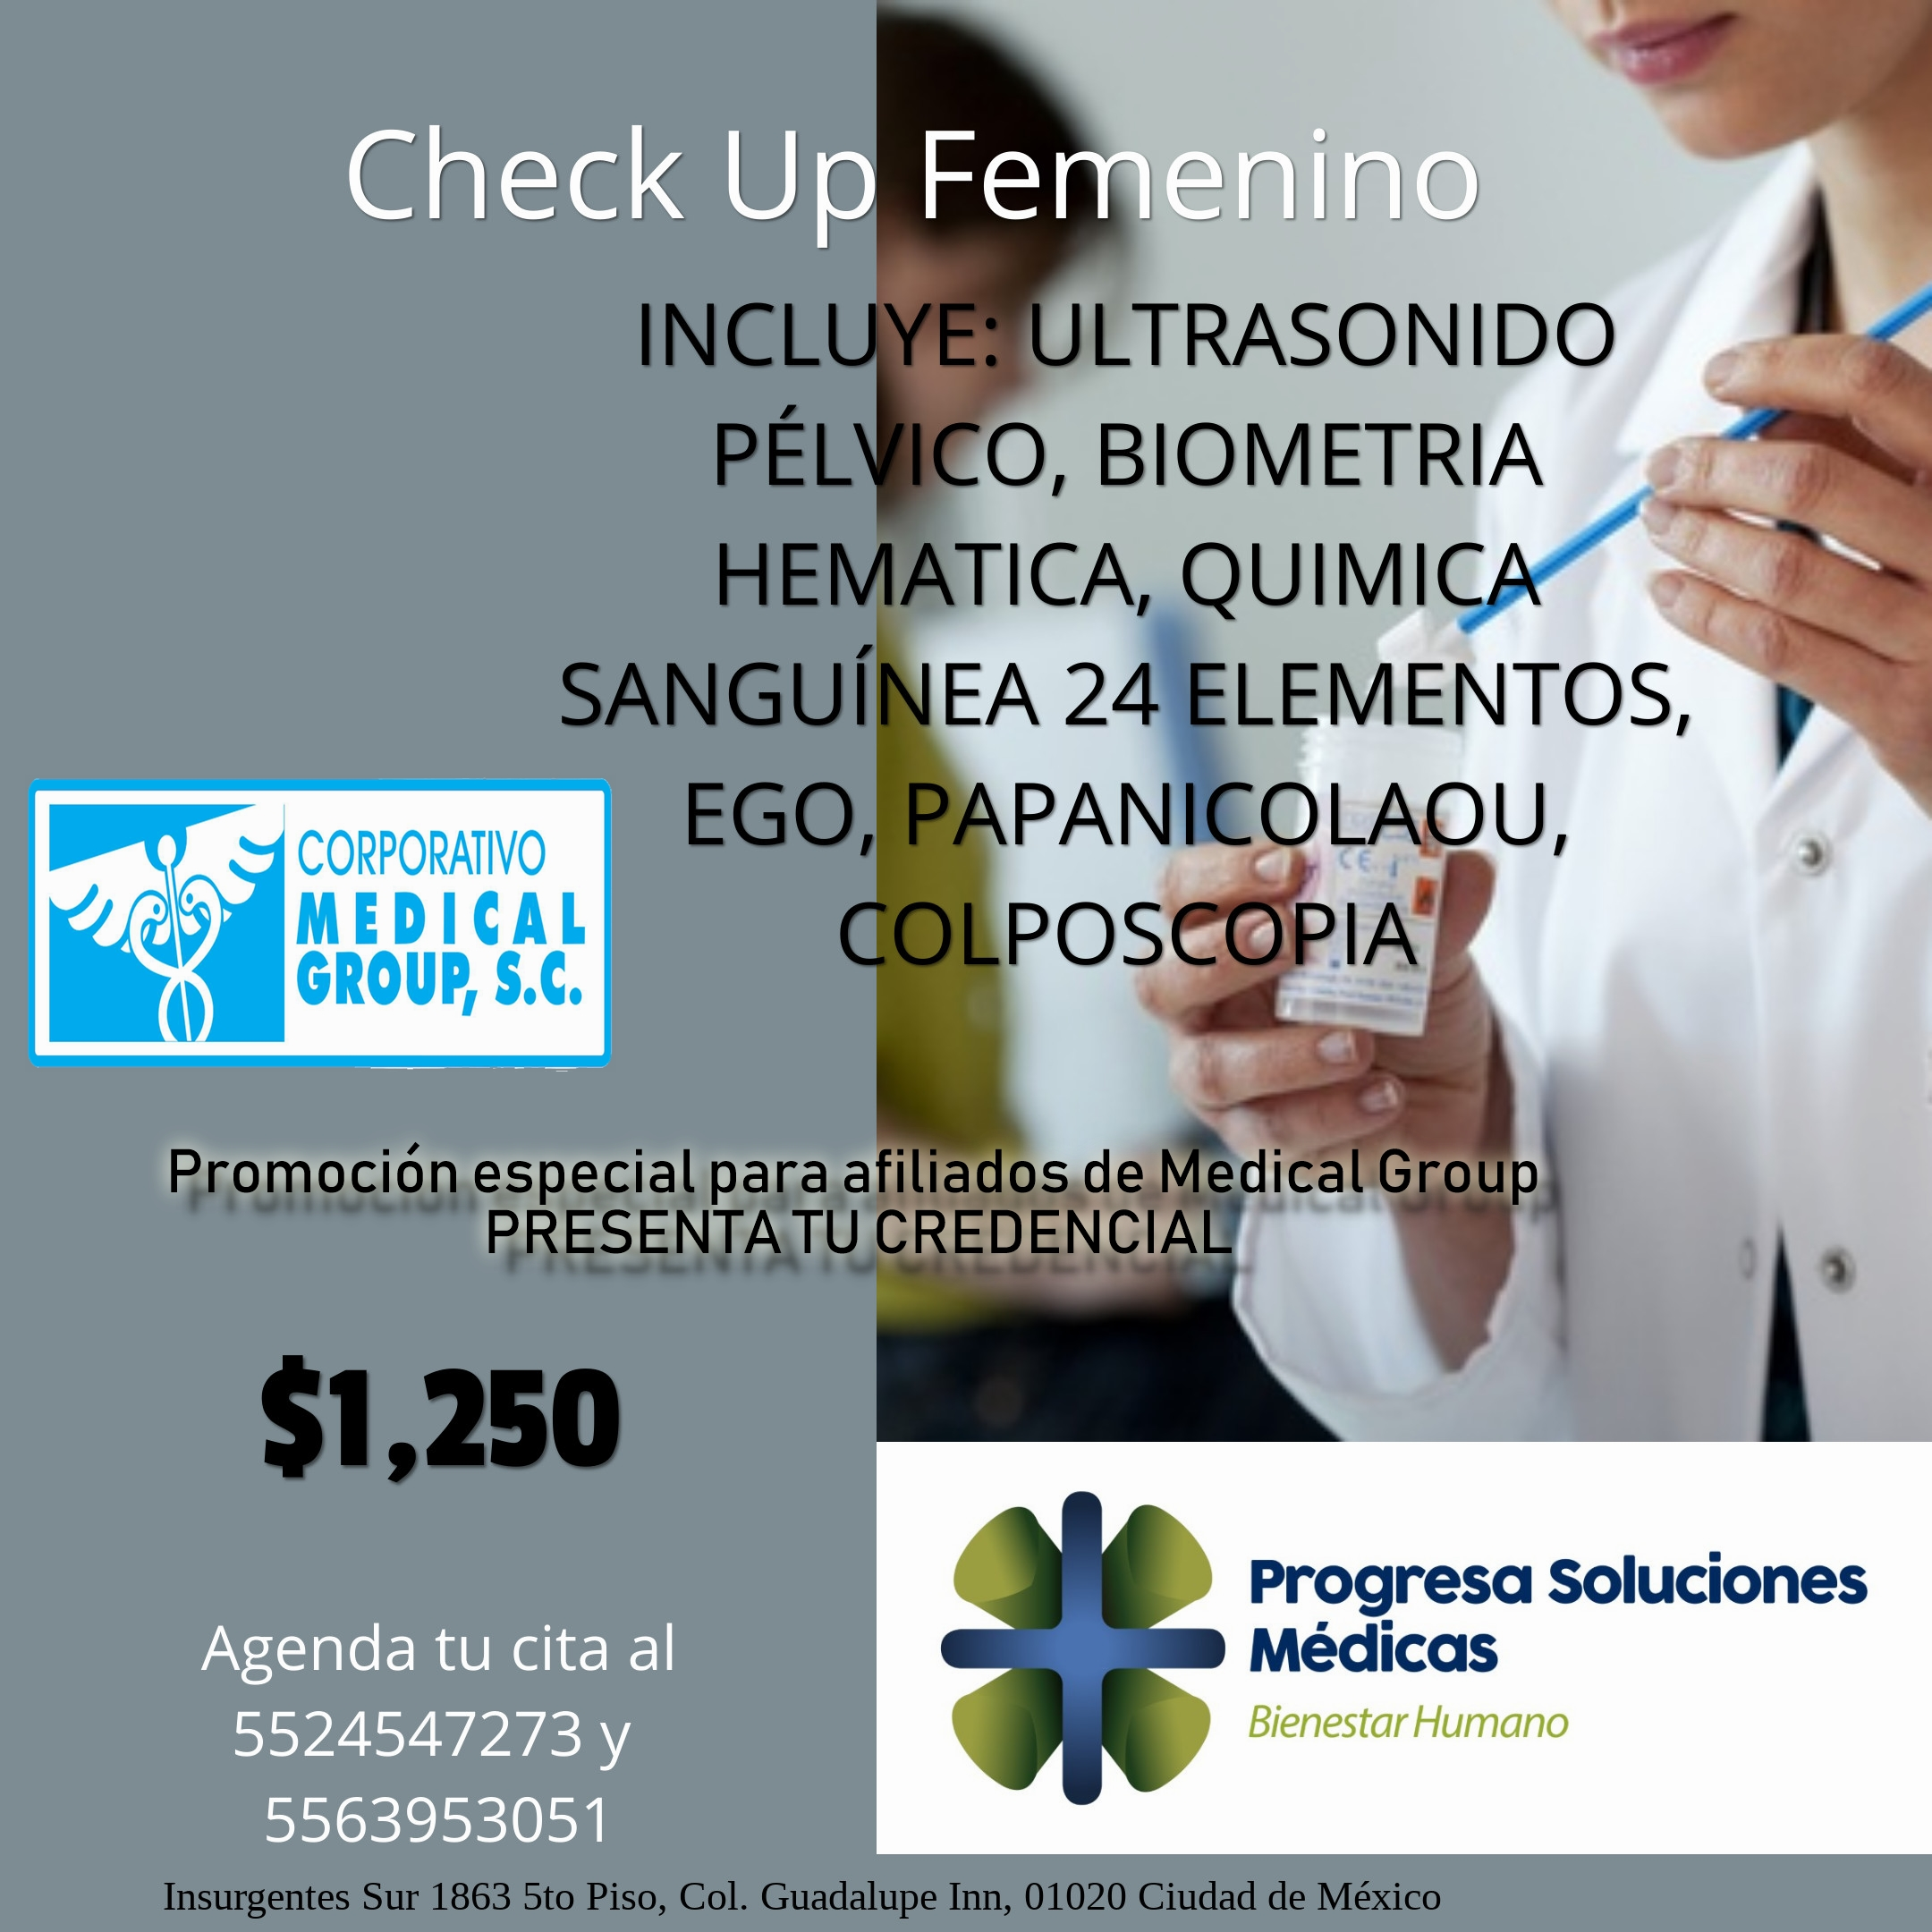 Check Up Femenino Medical Group 1